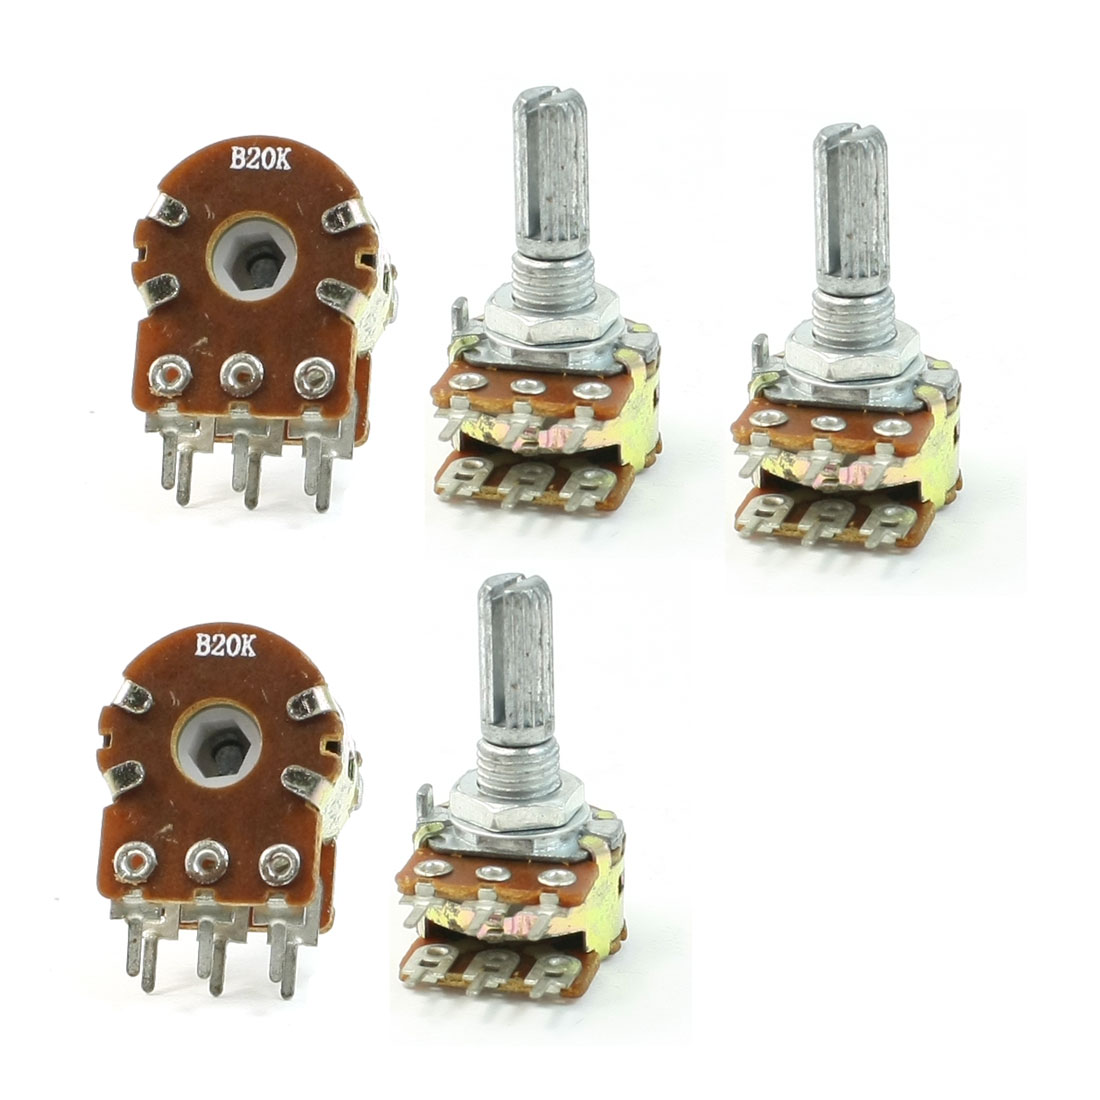 B20K 20K Ohm Adjustment Double Linear Rotary Taper Potentiometer 5 Pcs